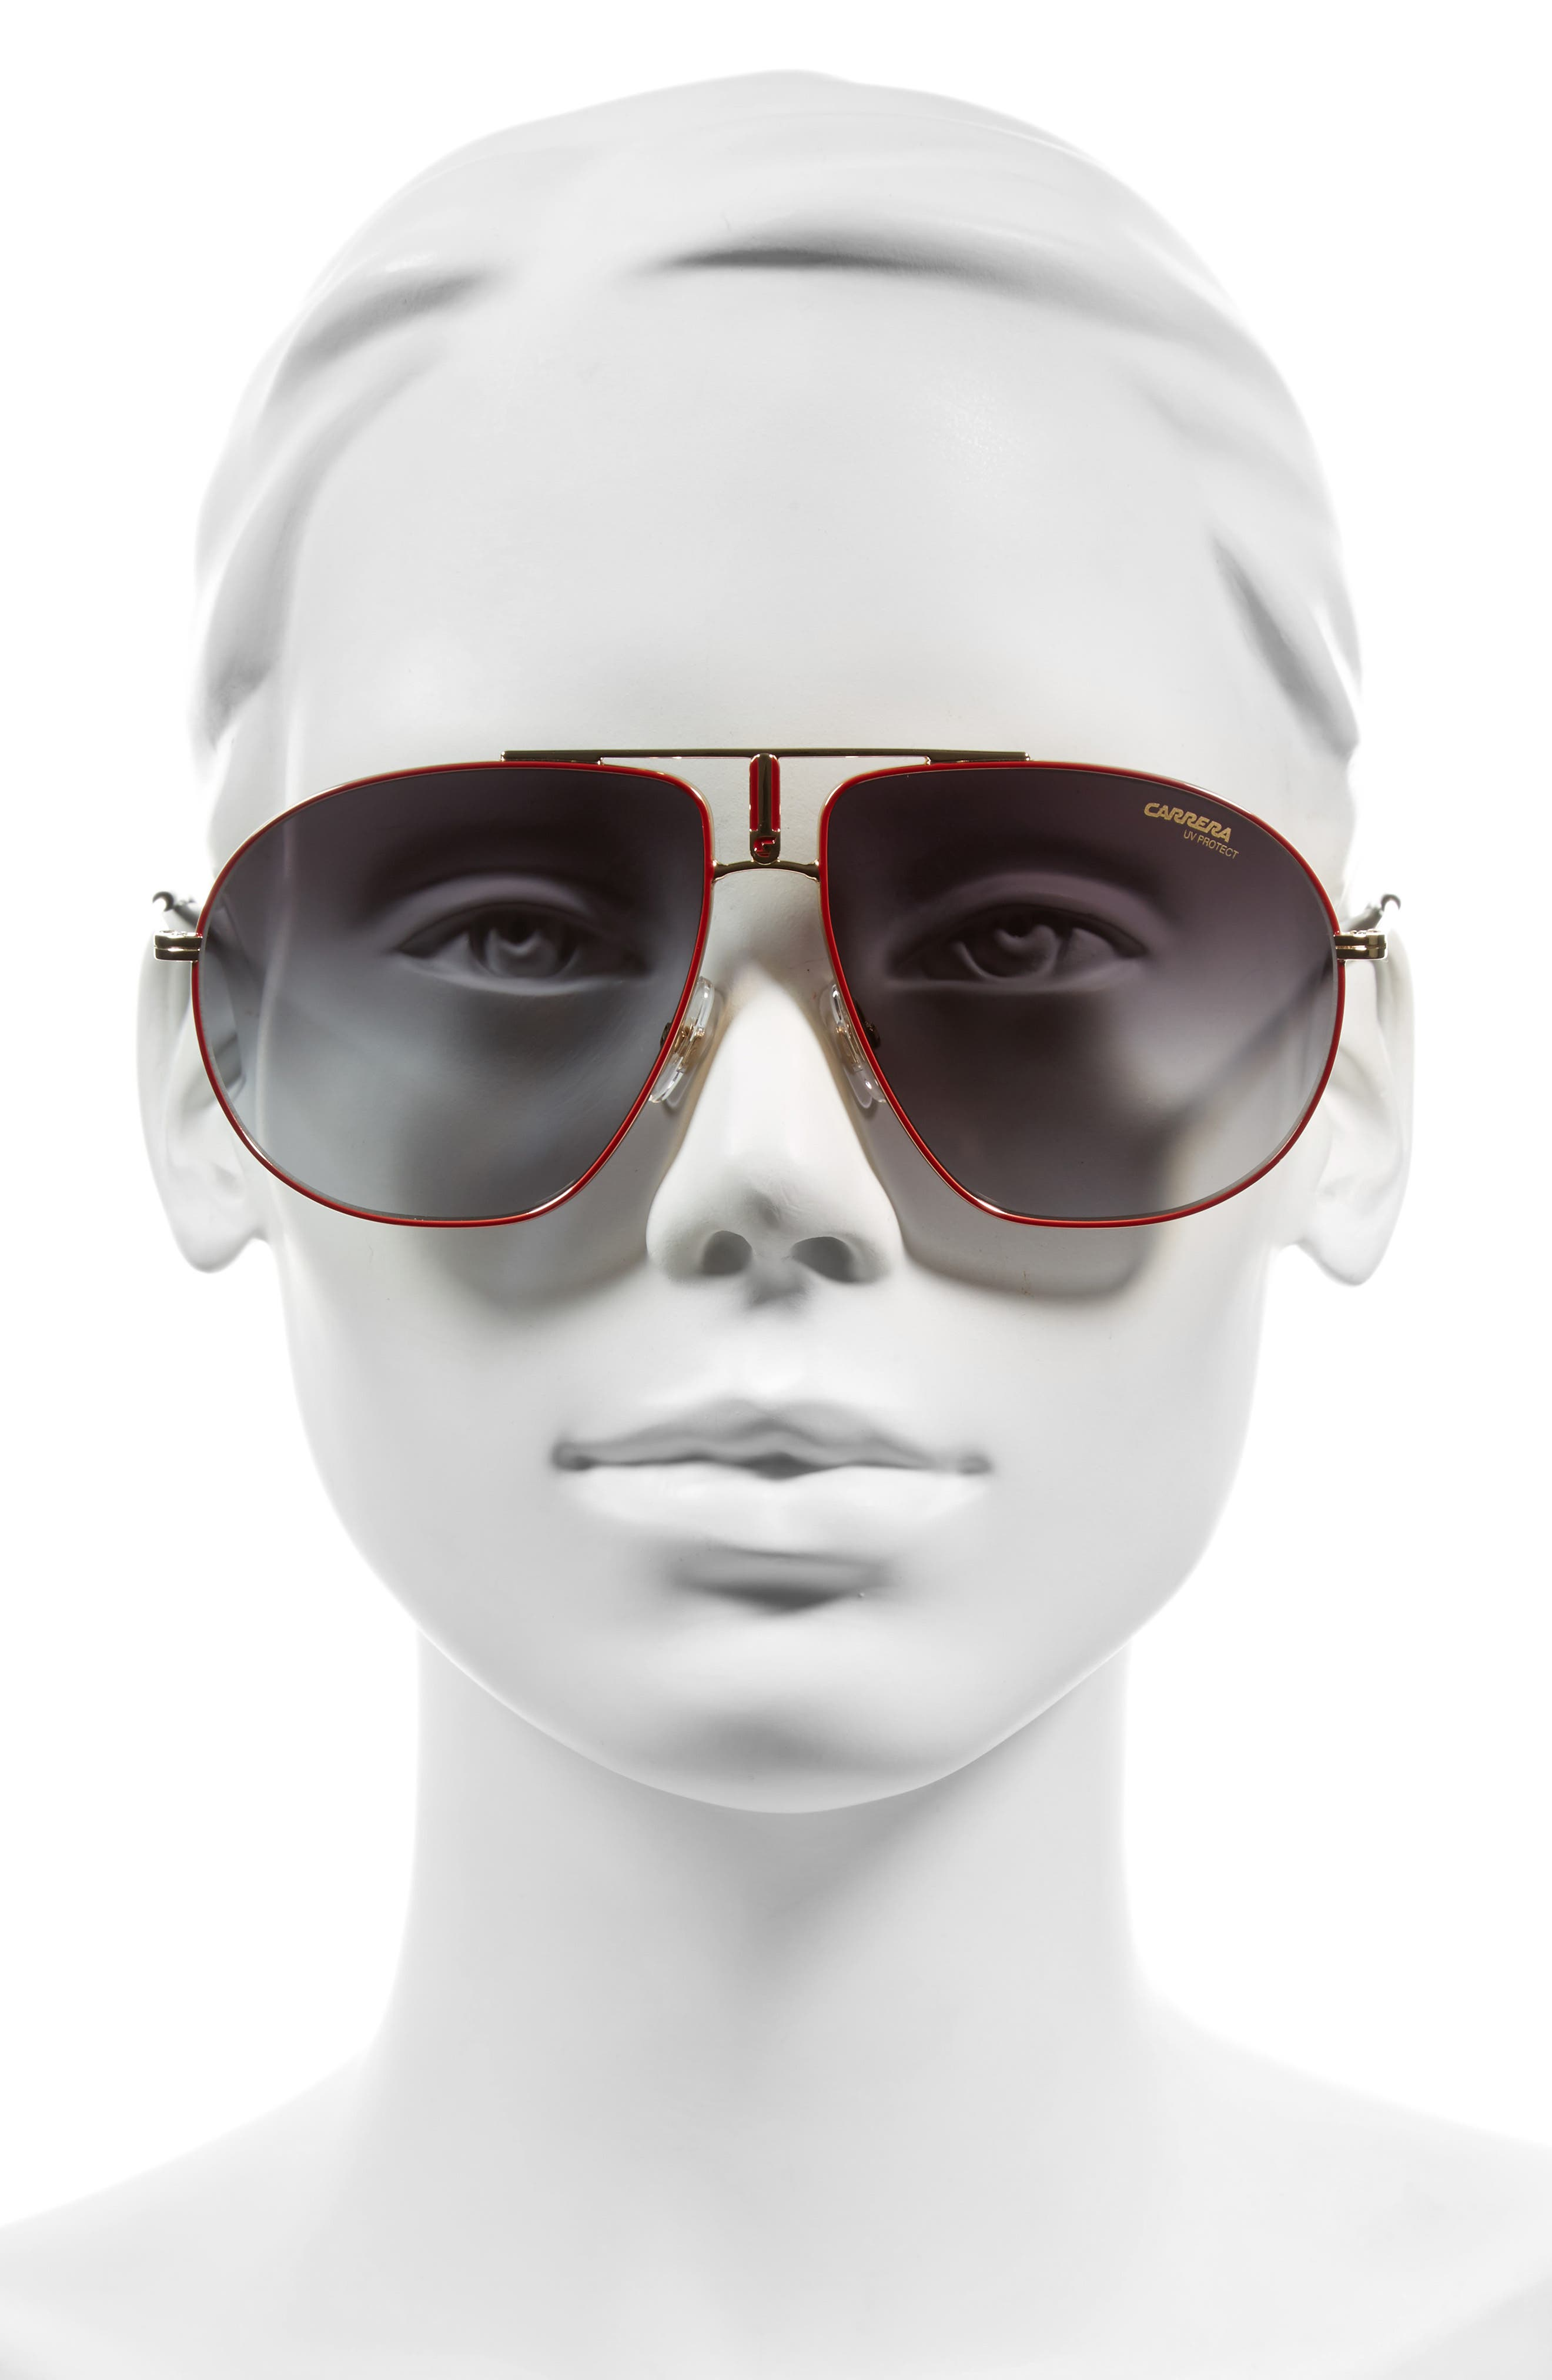 Carrera Bound 62mm Sunglasses,                             Alternate thumbnail 2, color,                             Red Gold